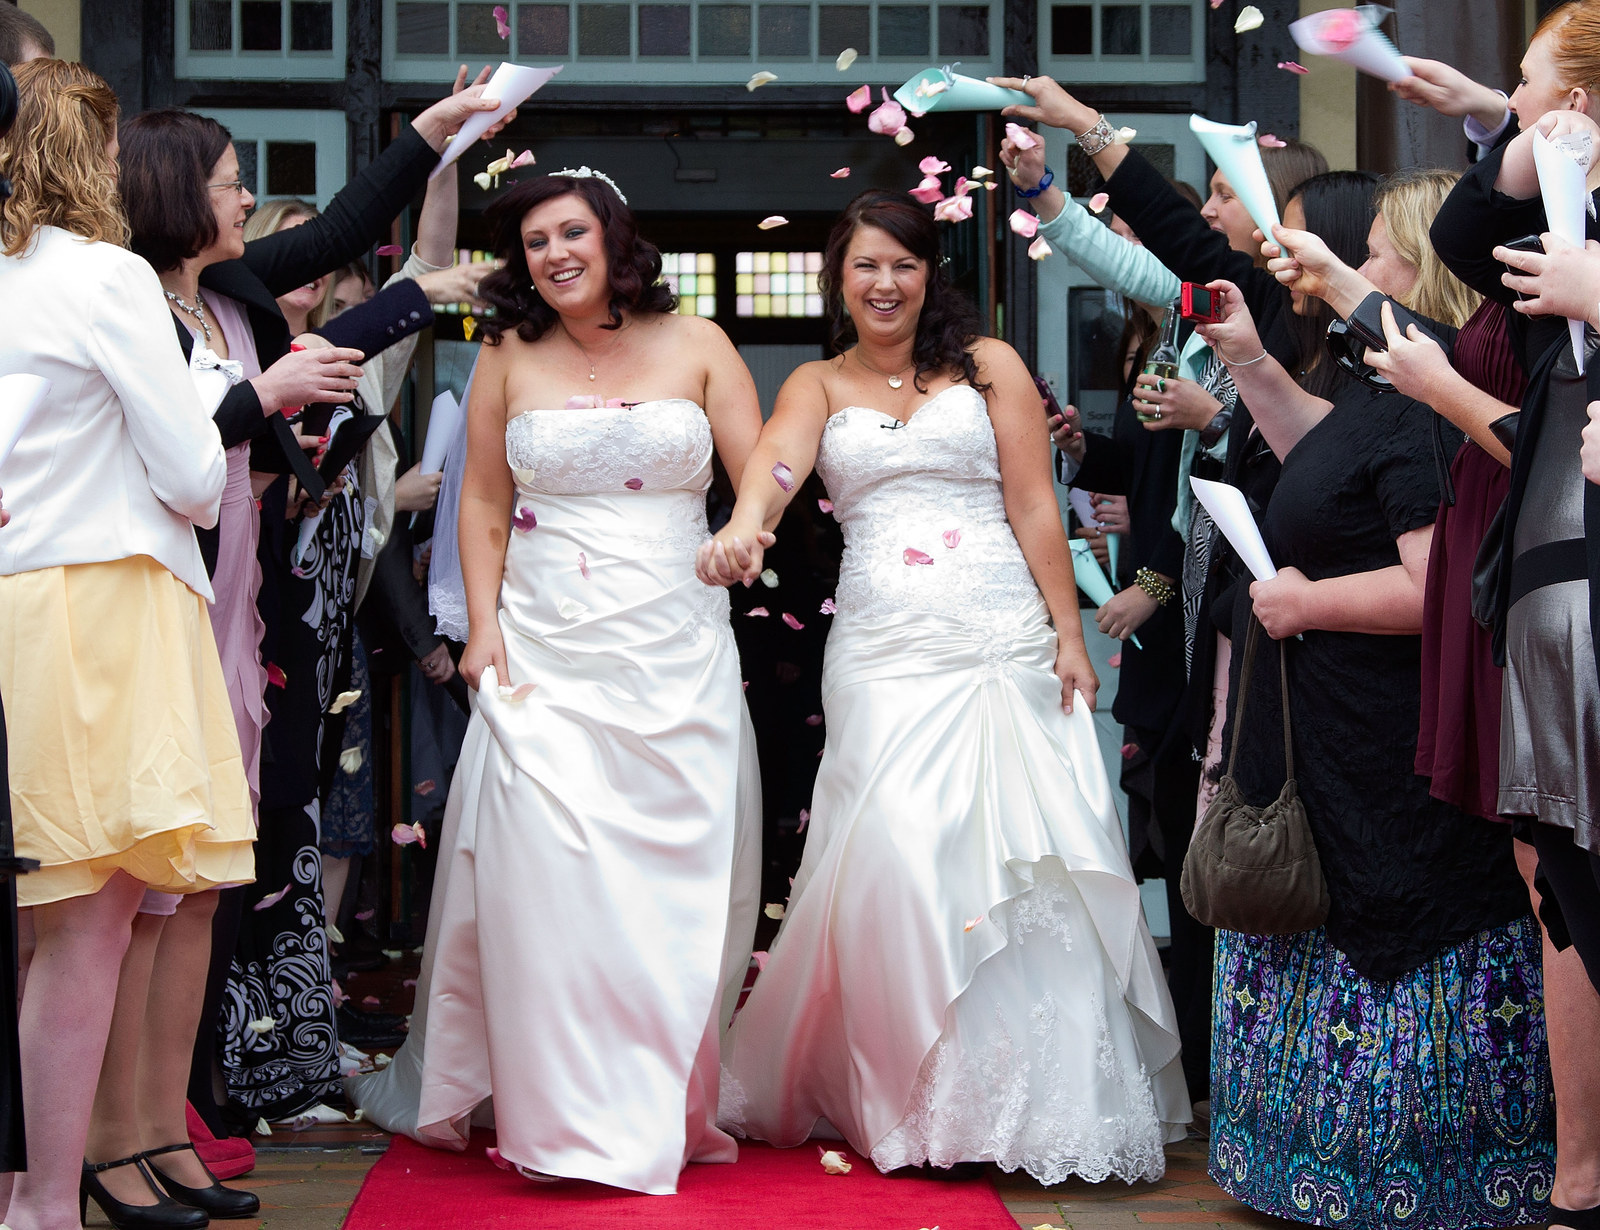 Marriage Equality Is Good For People's Mental Health, Say Psychiatrists